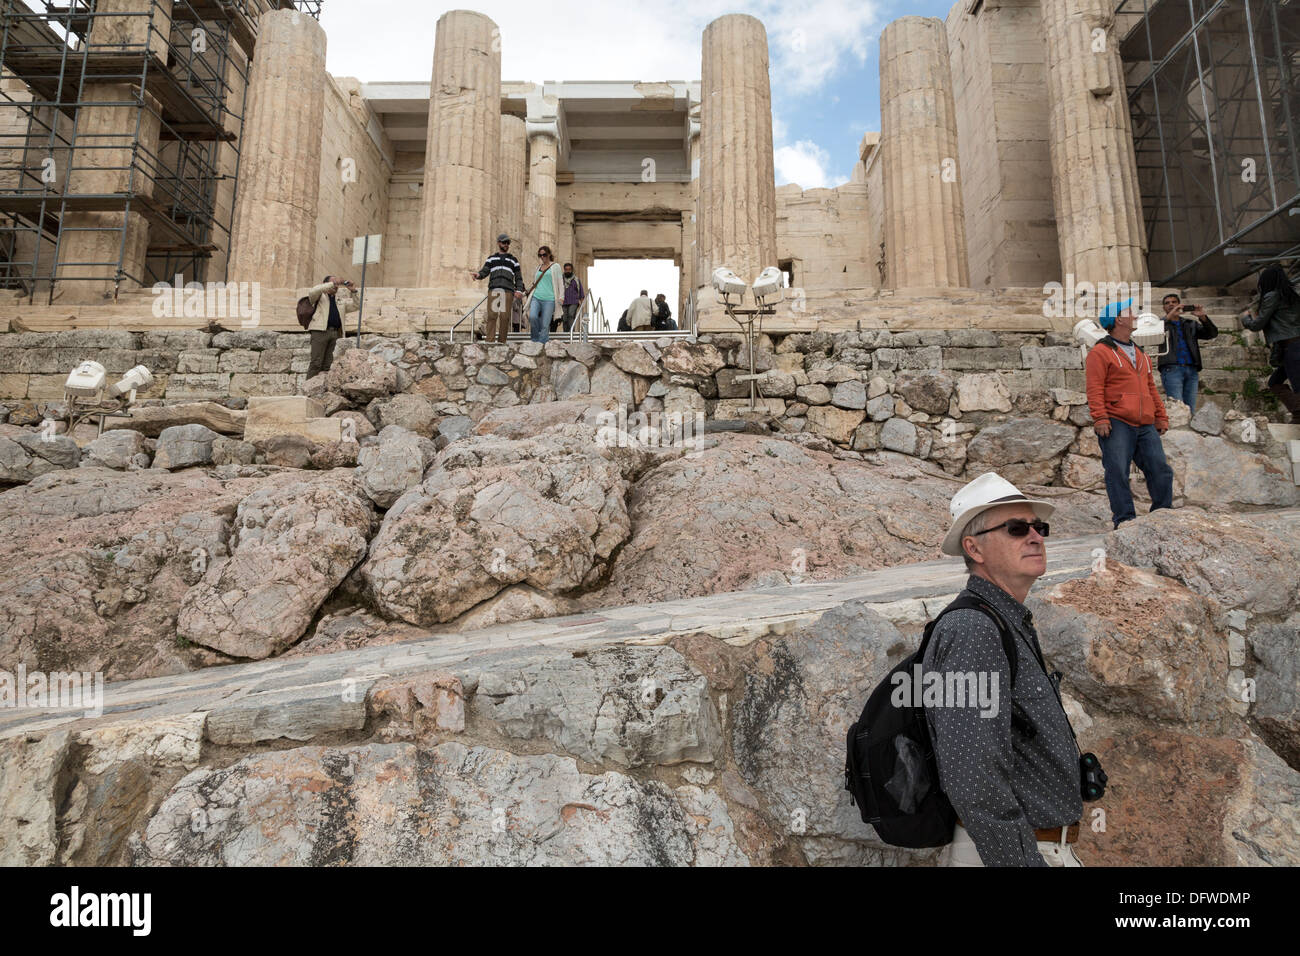 Tourists at Propylaea, the entrance of the Acropolis, in Athens, Greece on October 4, 2013 - Stock Image